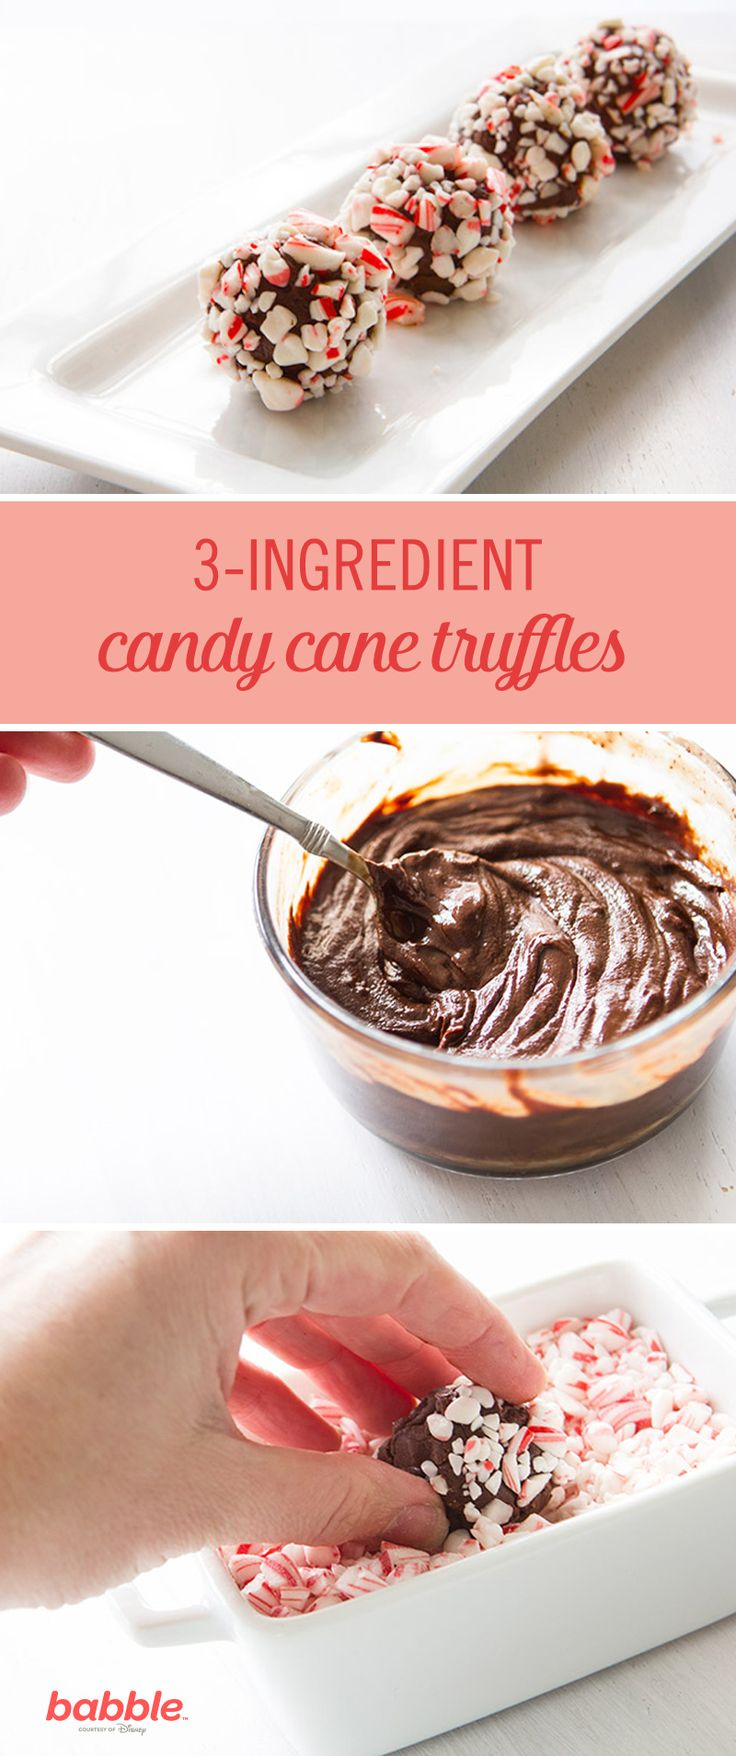 This Candy Cane Truffle only requires three ingredients and is the perfect festive treat for the Christmas season. Follow this holiday recipe to make any flavor of truffle you desire: chocolate sprinkle dipped, hazelnut topped, or white chocolate slathered. With this simple recipe, you can be walking out the door with a gorgeous plate of homemade holiday goodies in less than an hour … ready to wow the neighbors like the kitchen queen you are.